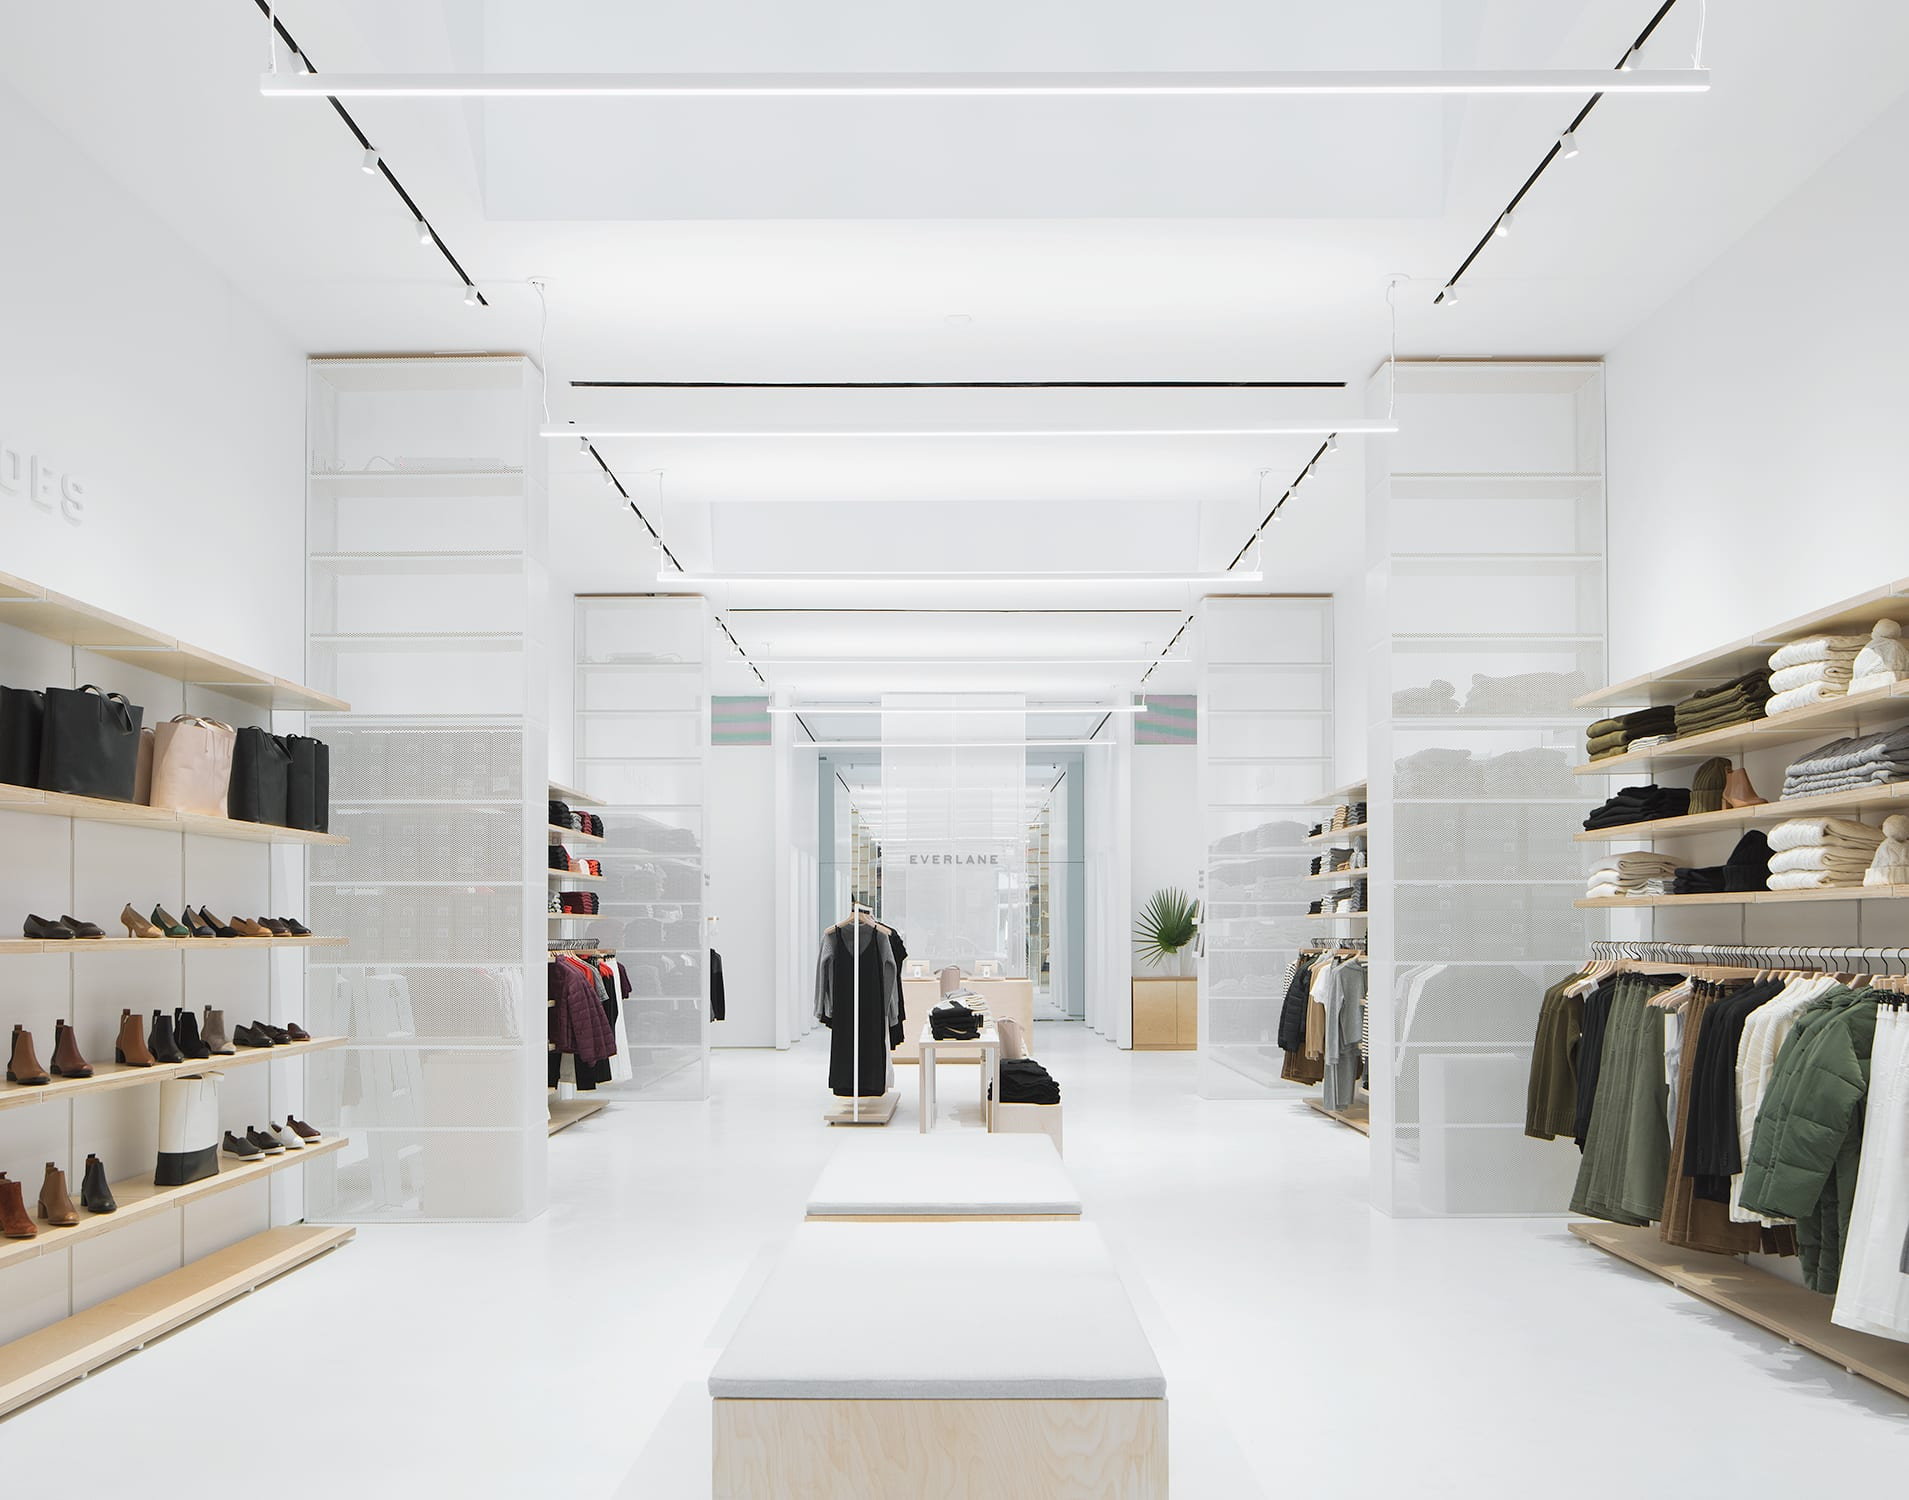 Everlane and warby parker just opened new nyc stores complex for Trend design shop